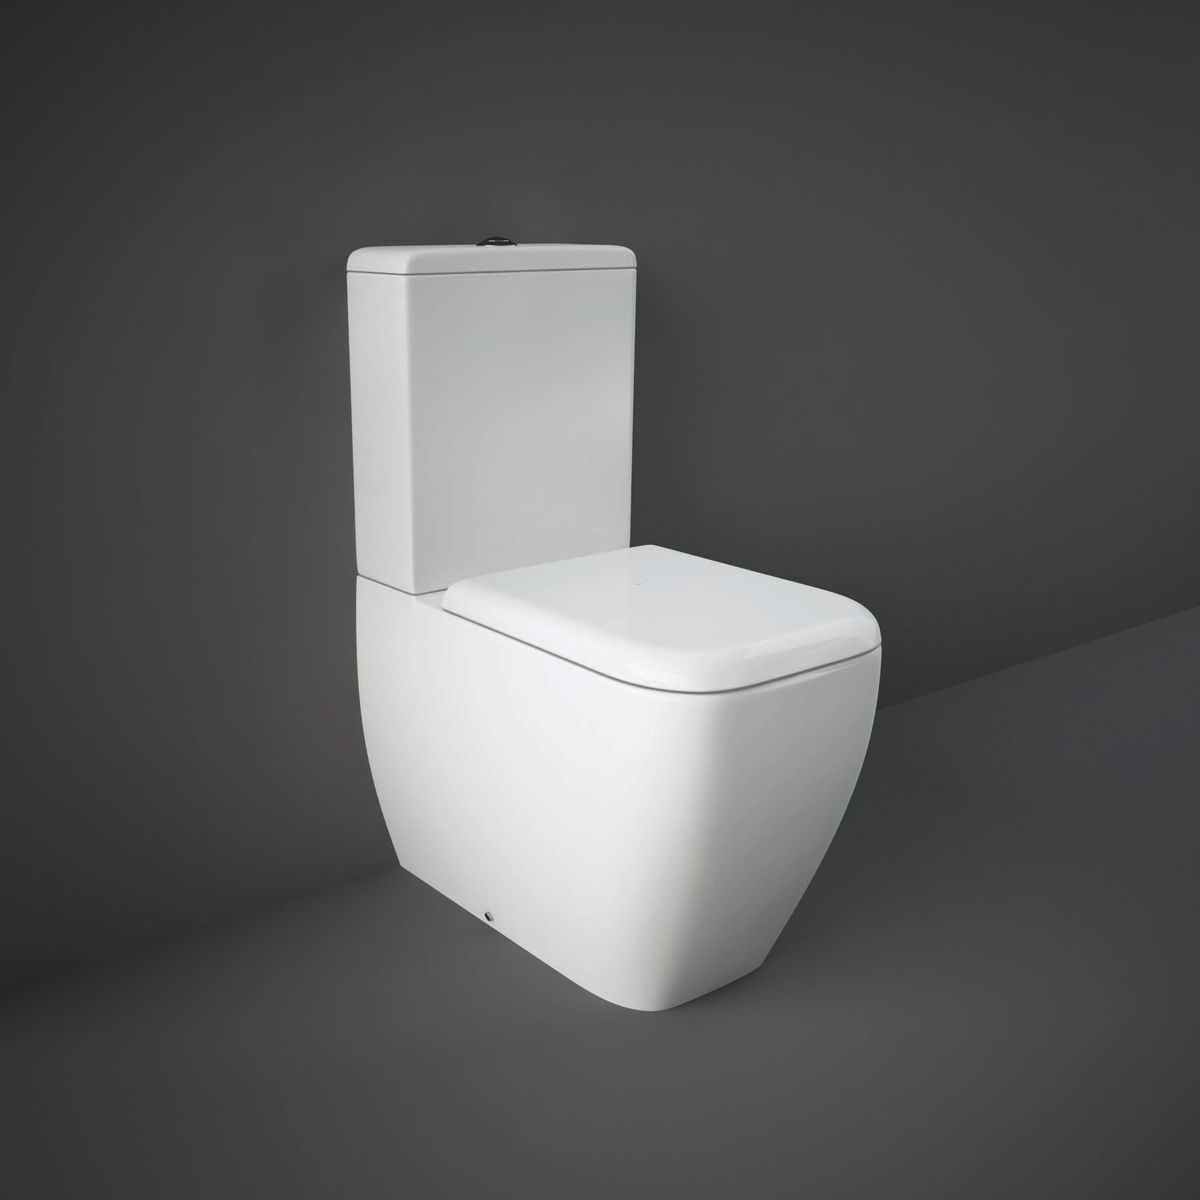 RAK Metropolitan Rimless Back To Wall Toilet with Soft Close Seat